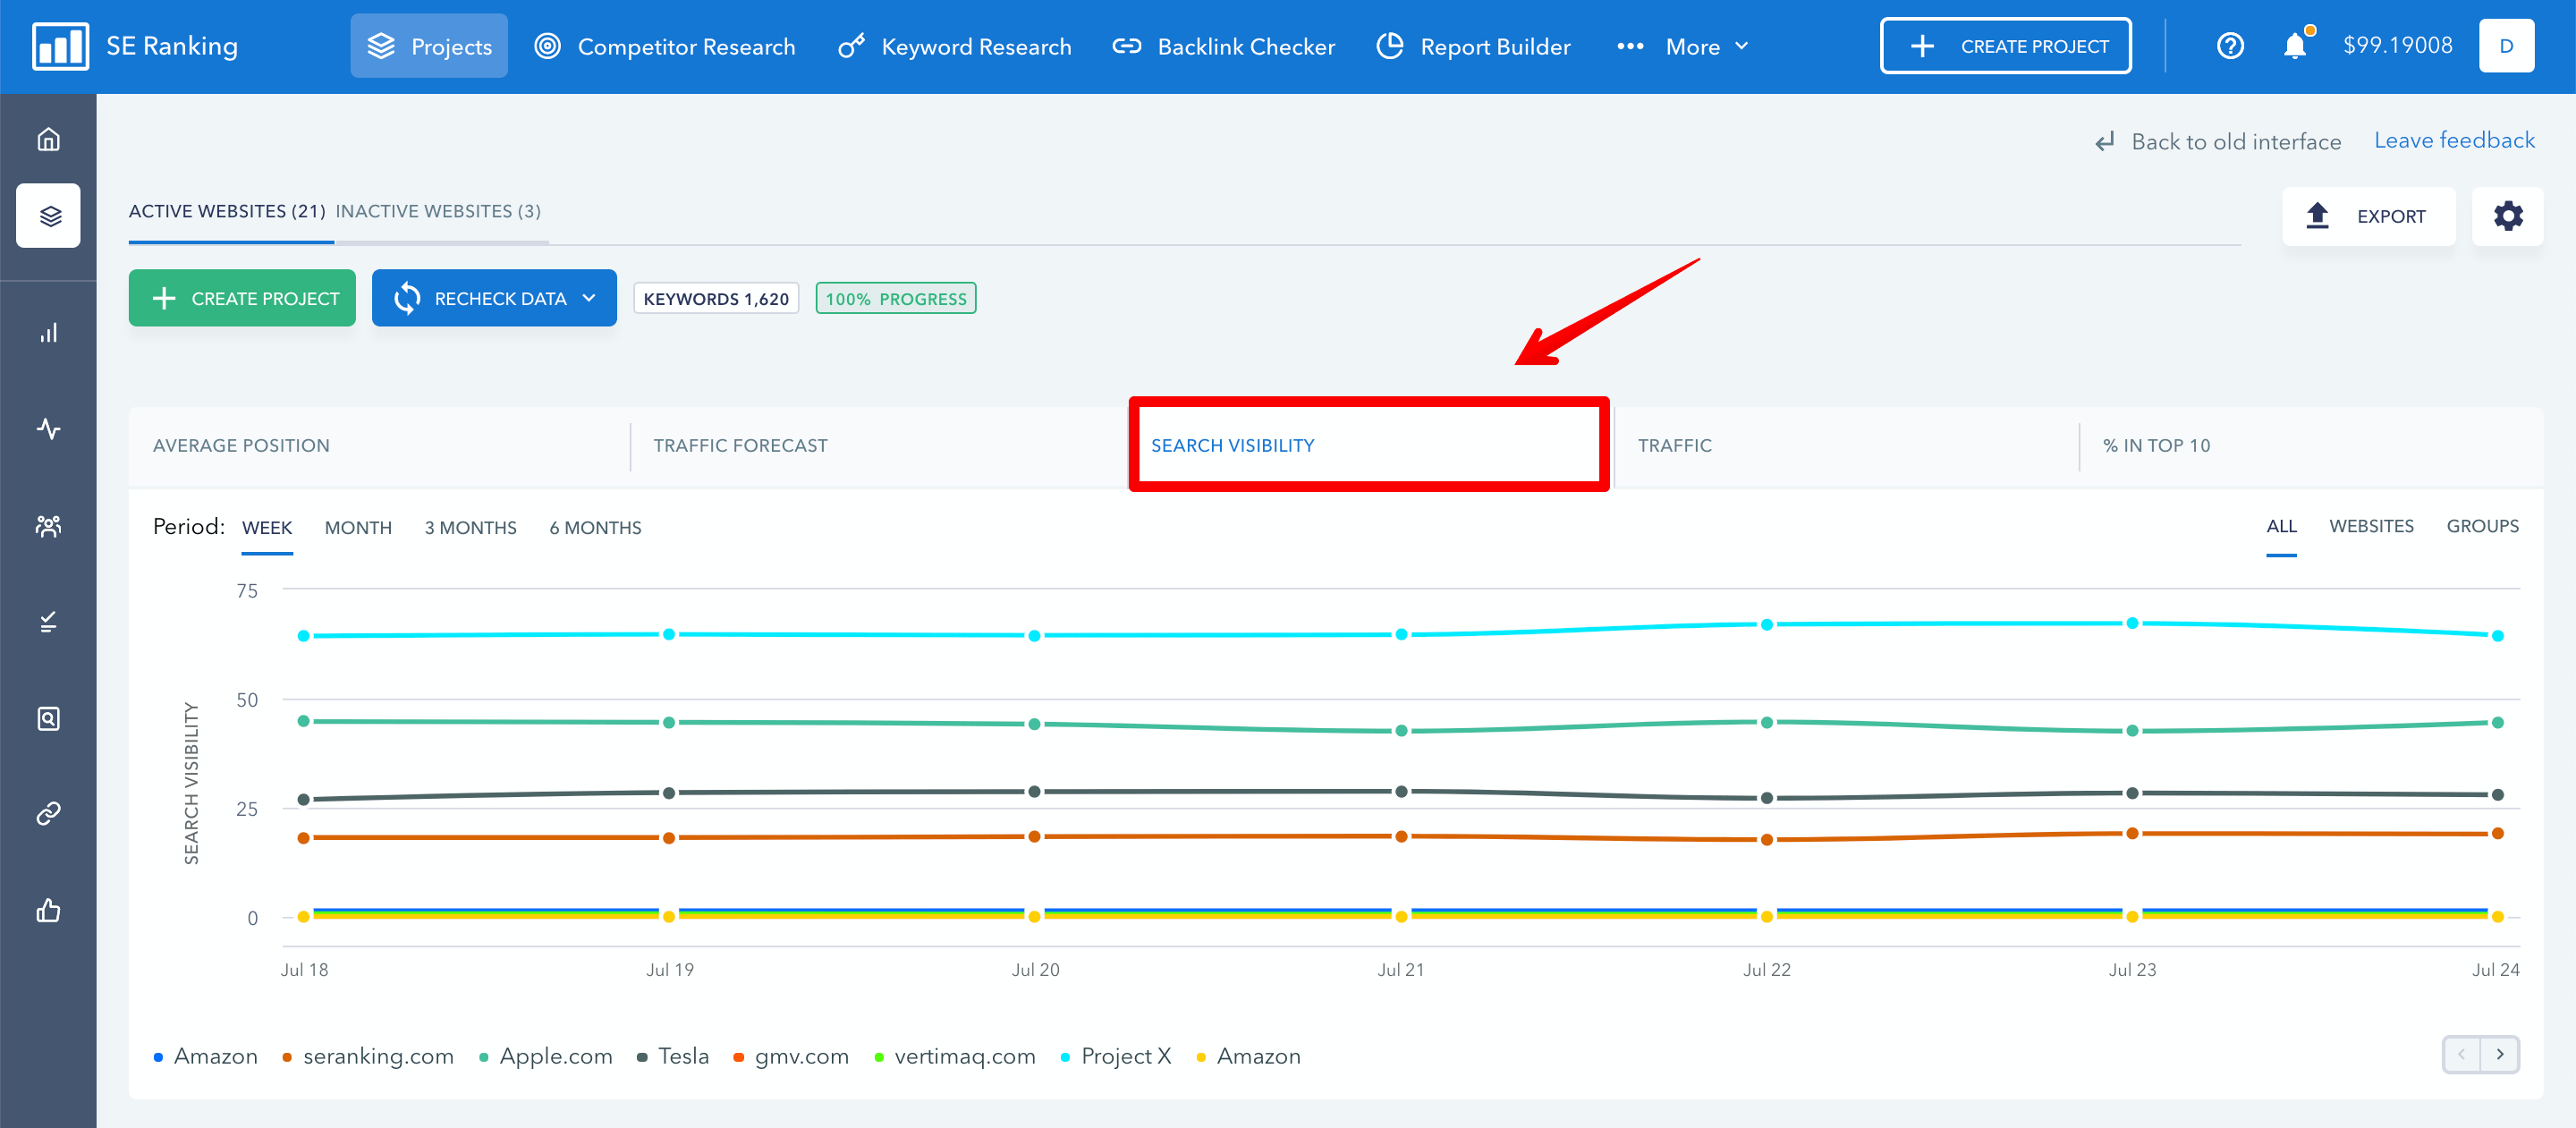 Overall search visibility graph